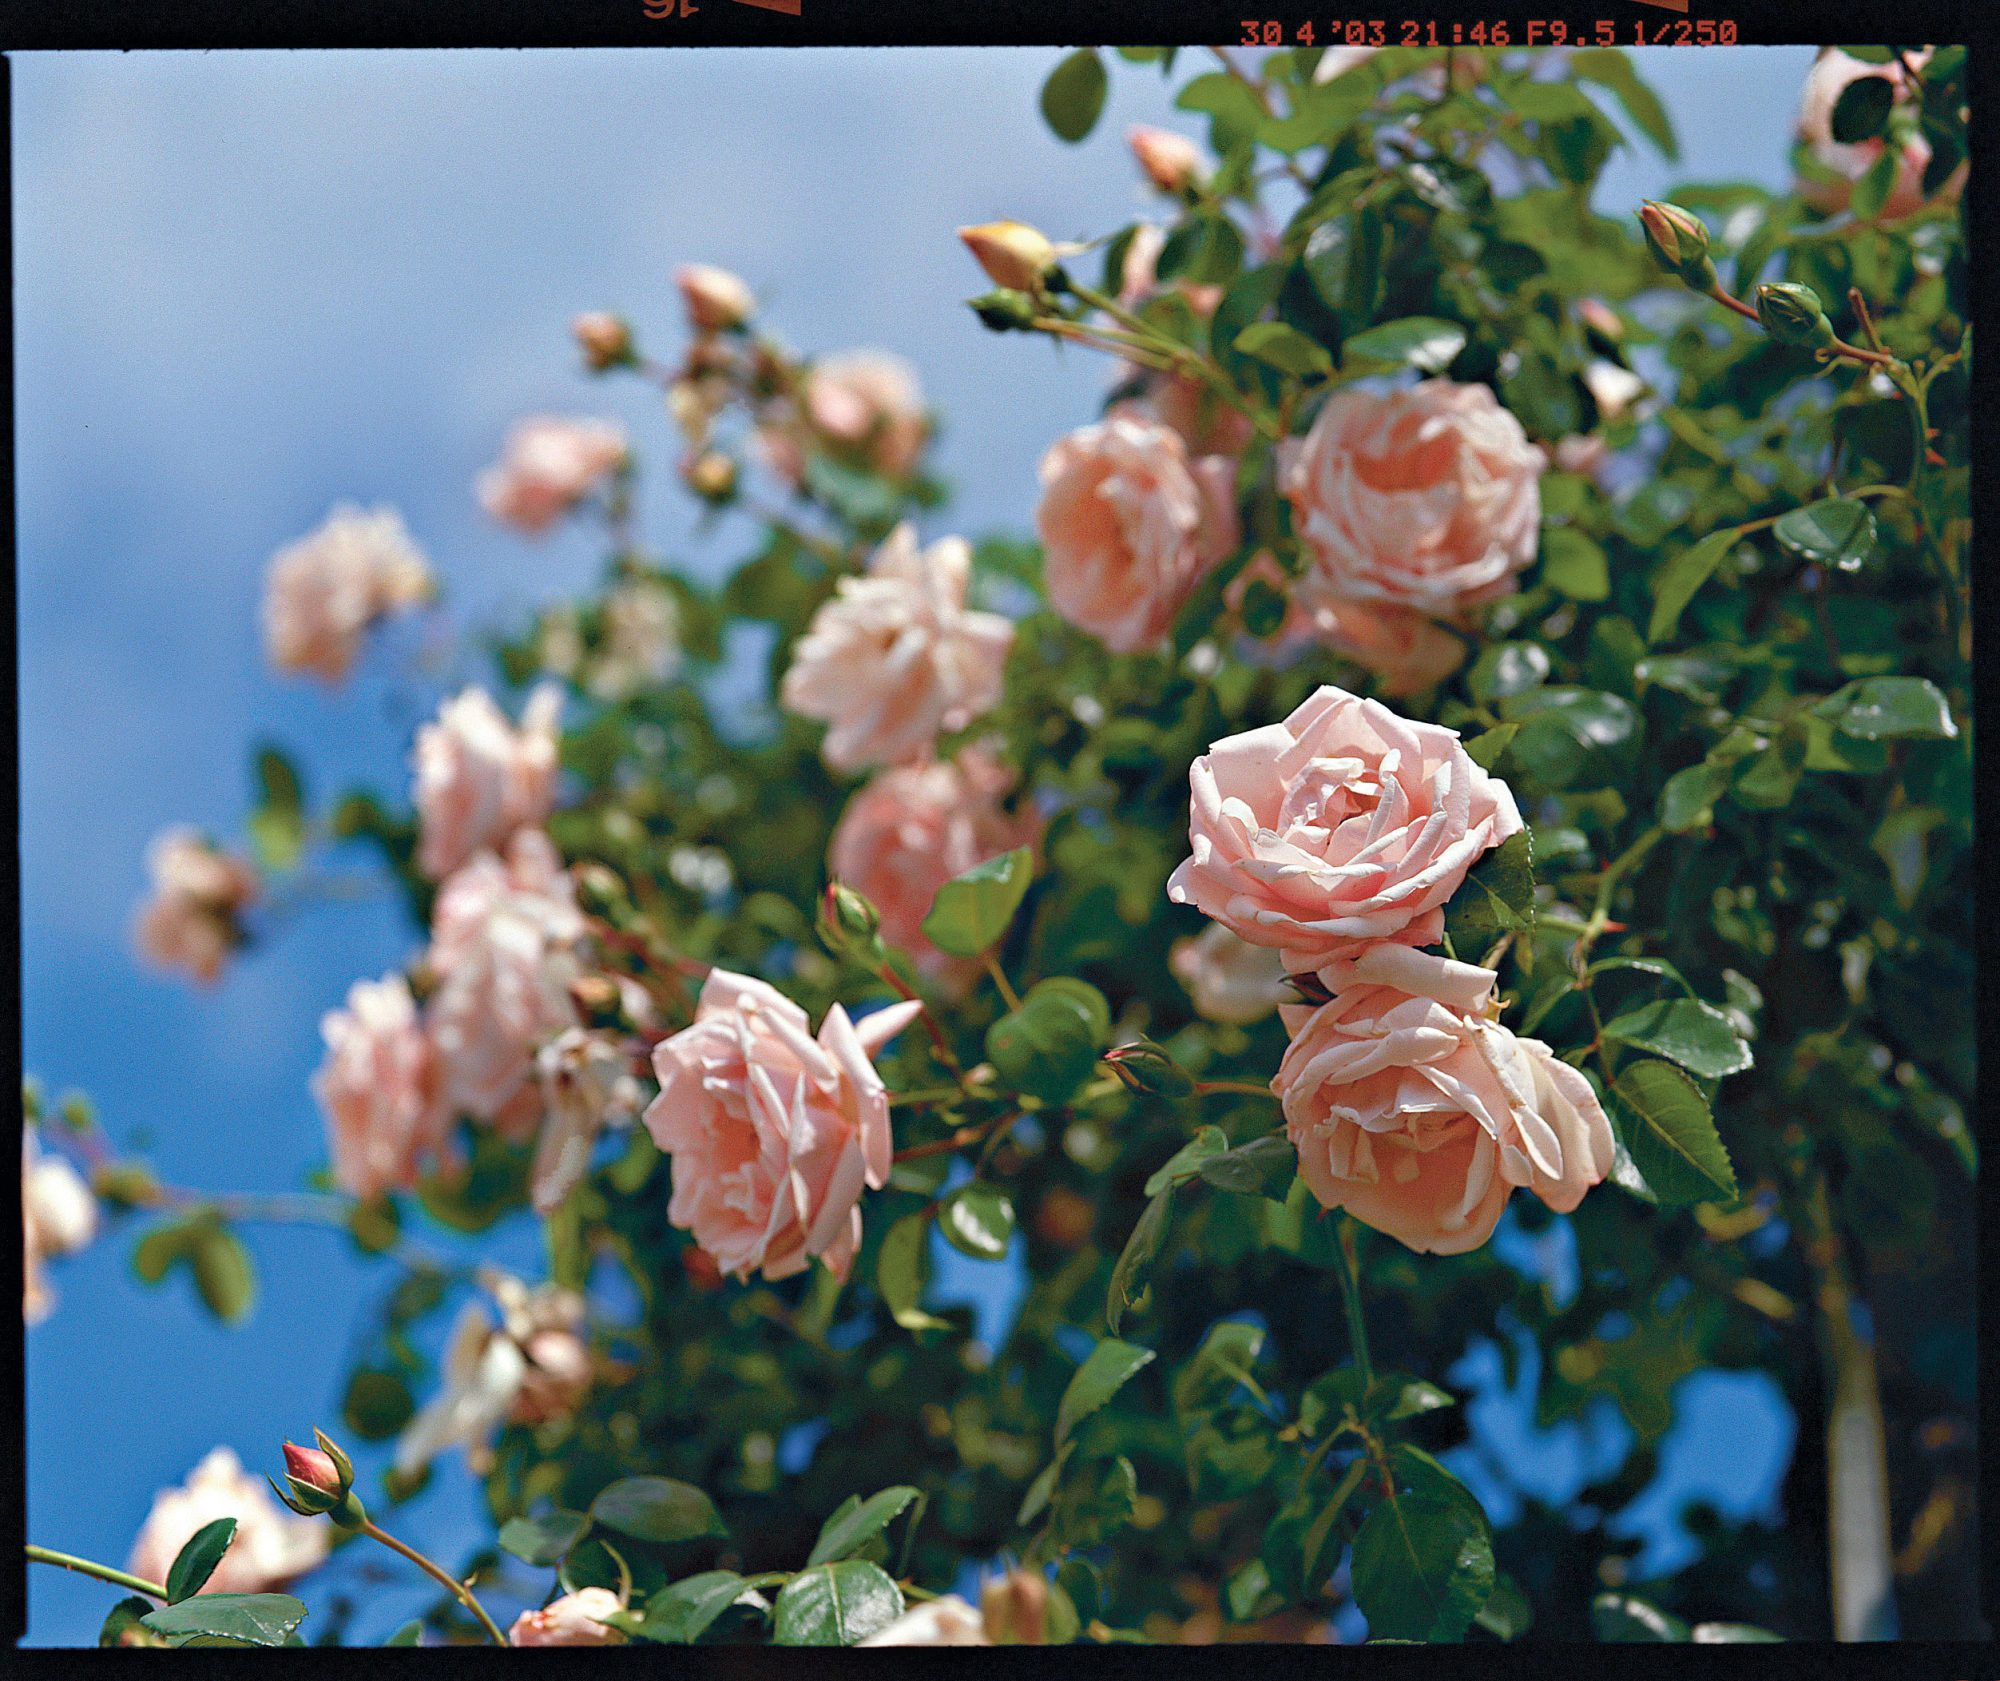 Roses In Garden: Summer Care For 'Knock Out' Rose